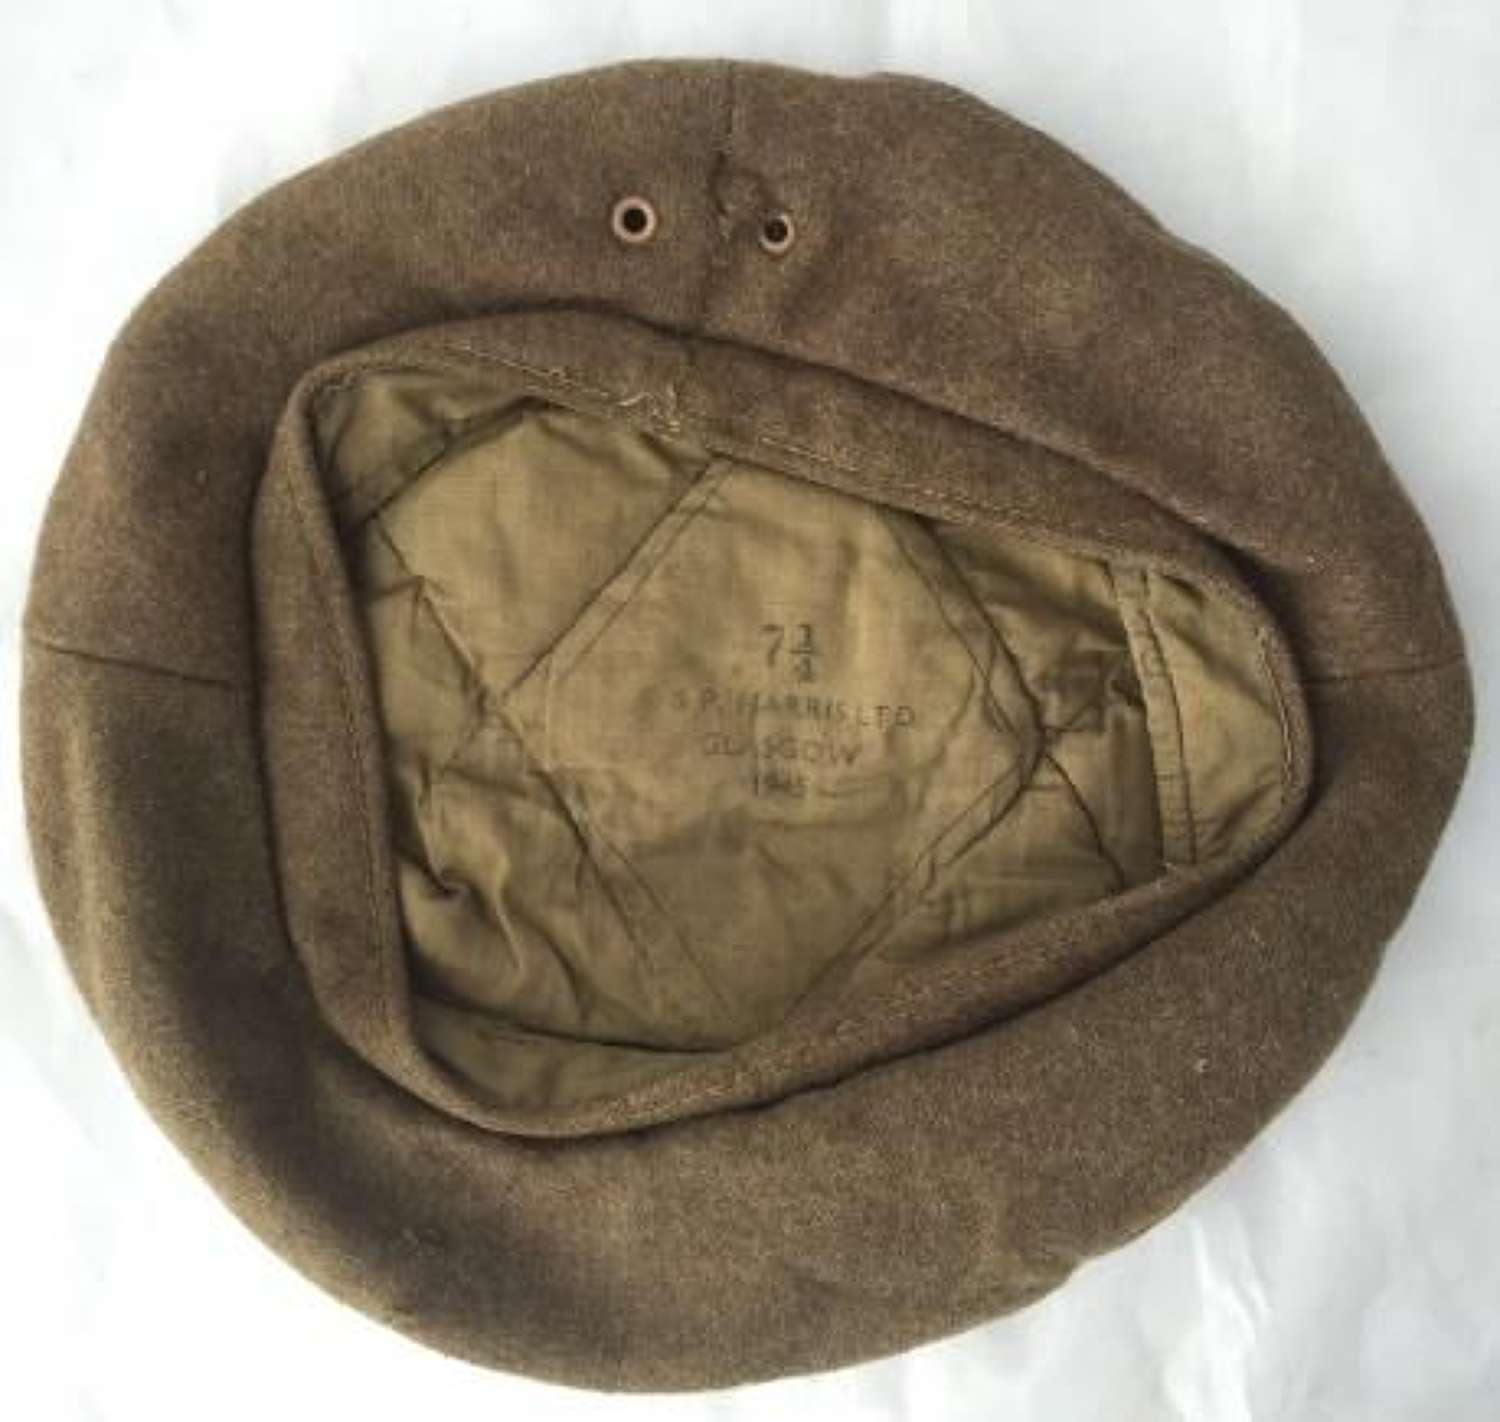 1945 Dated British Army GS Beret Size 7 1/4 By 'S & P Harris'